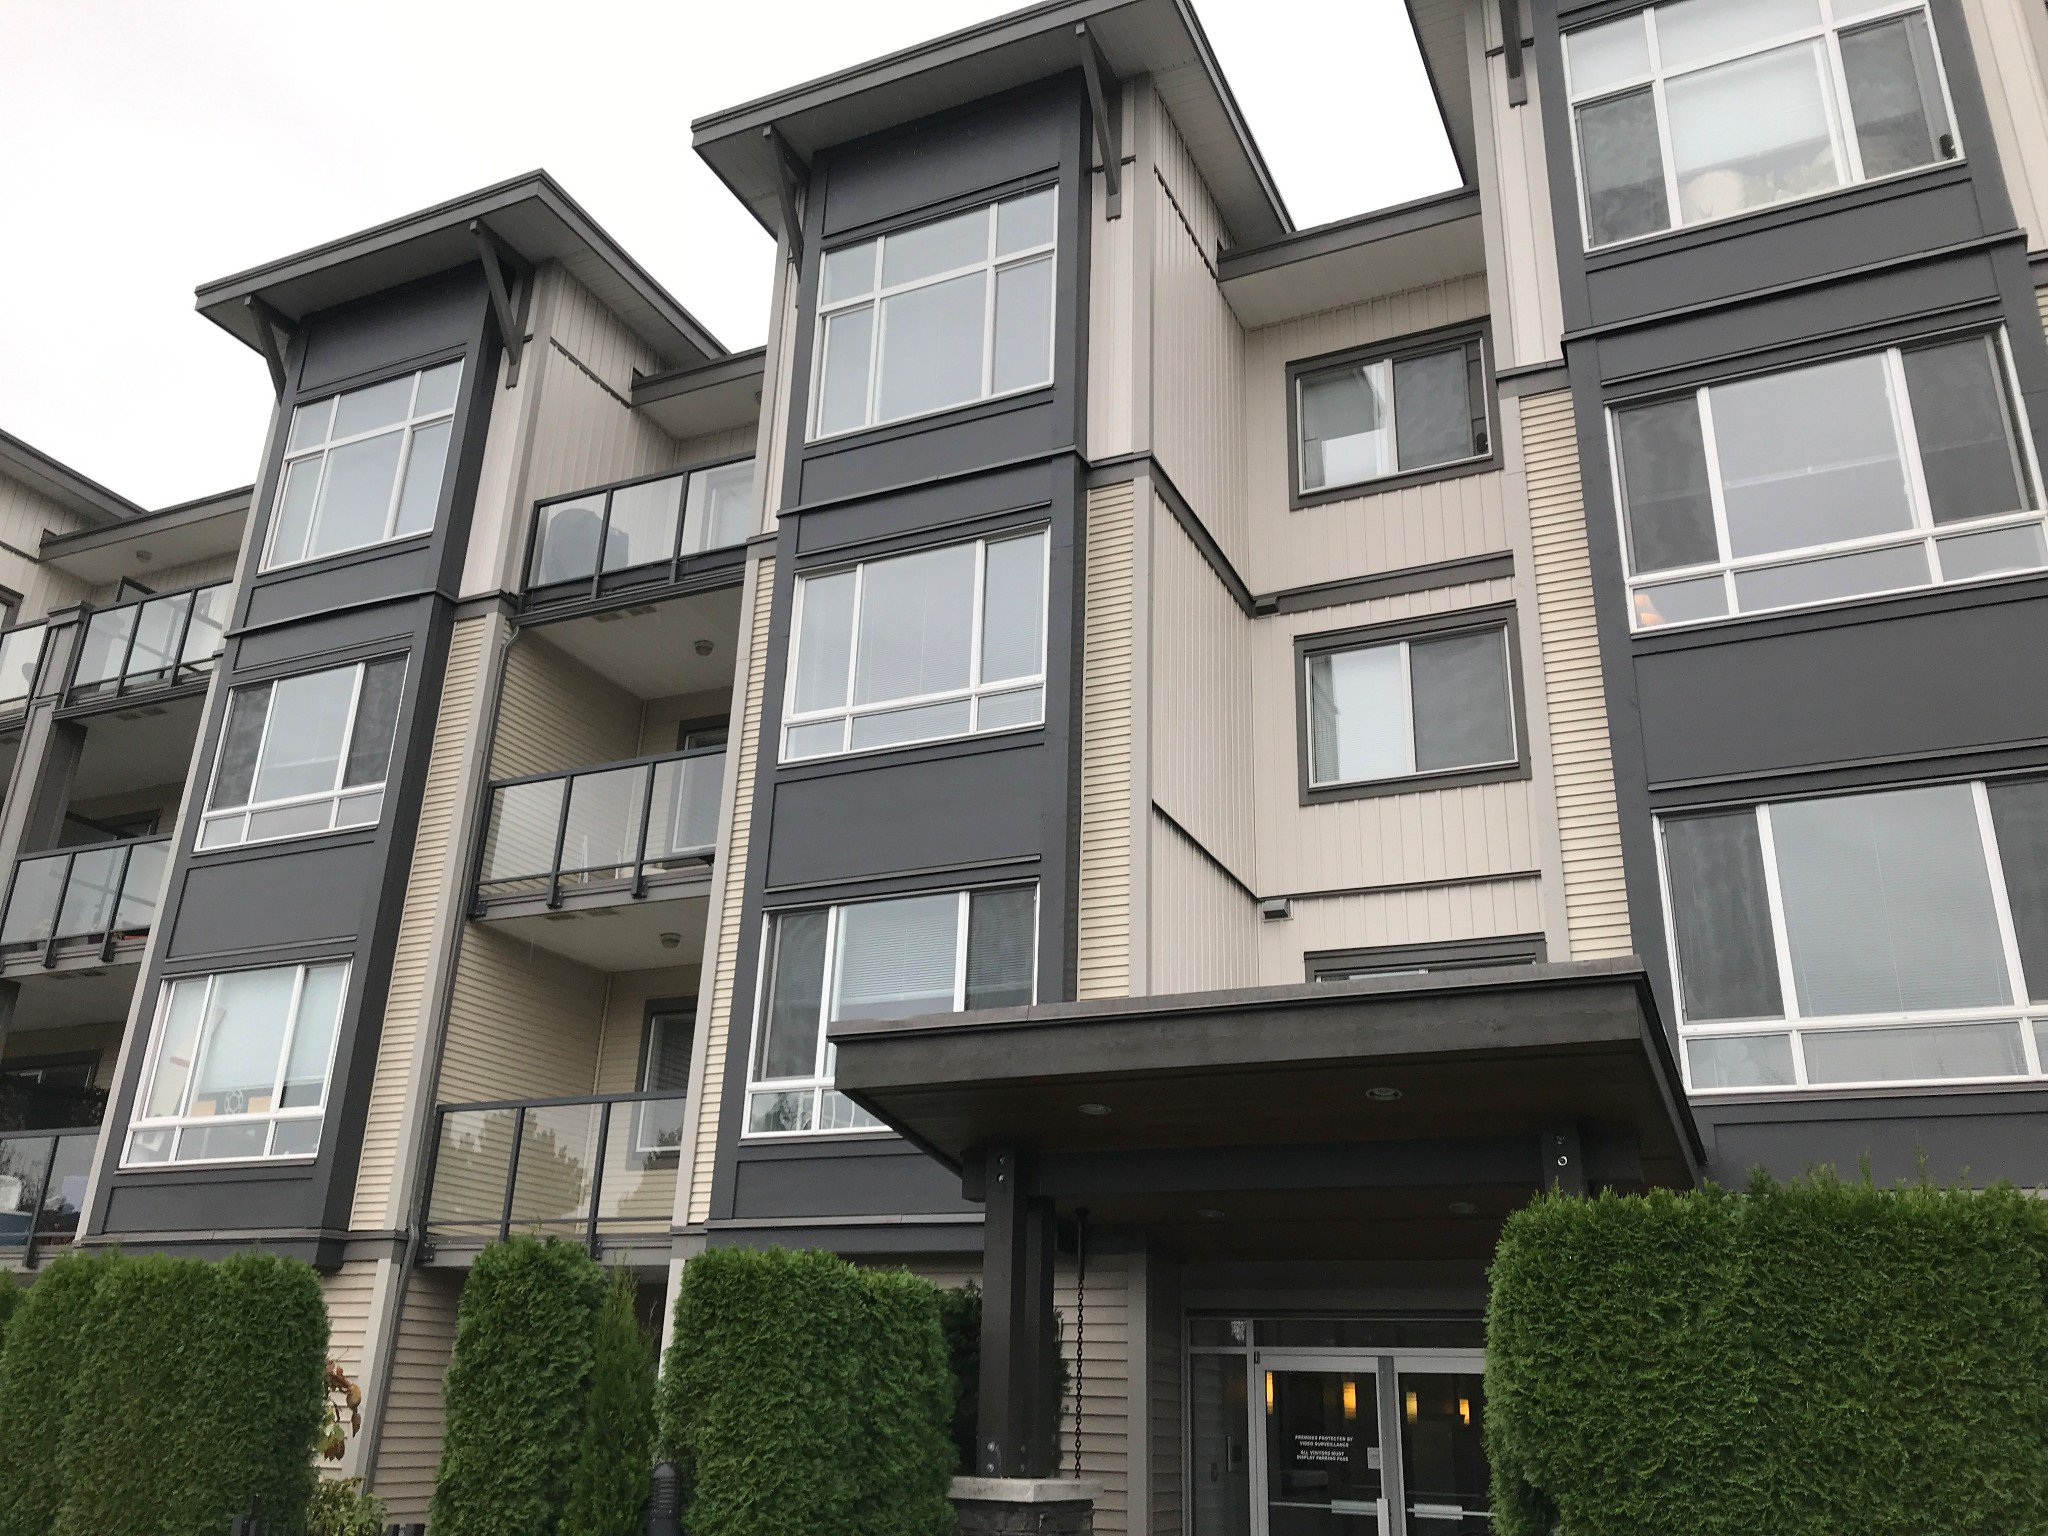 Main Photo: #104 2943 Nelson Pl in Abbotsford: Central Abbotsford Condo for rent